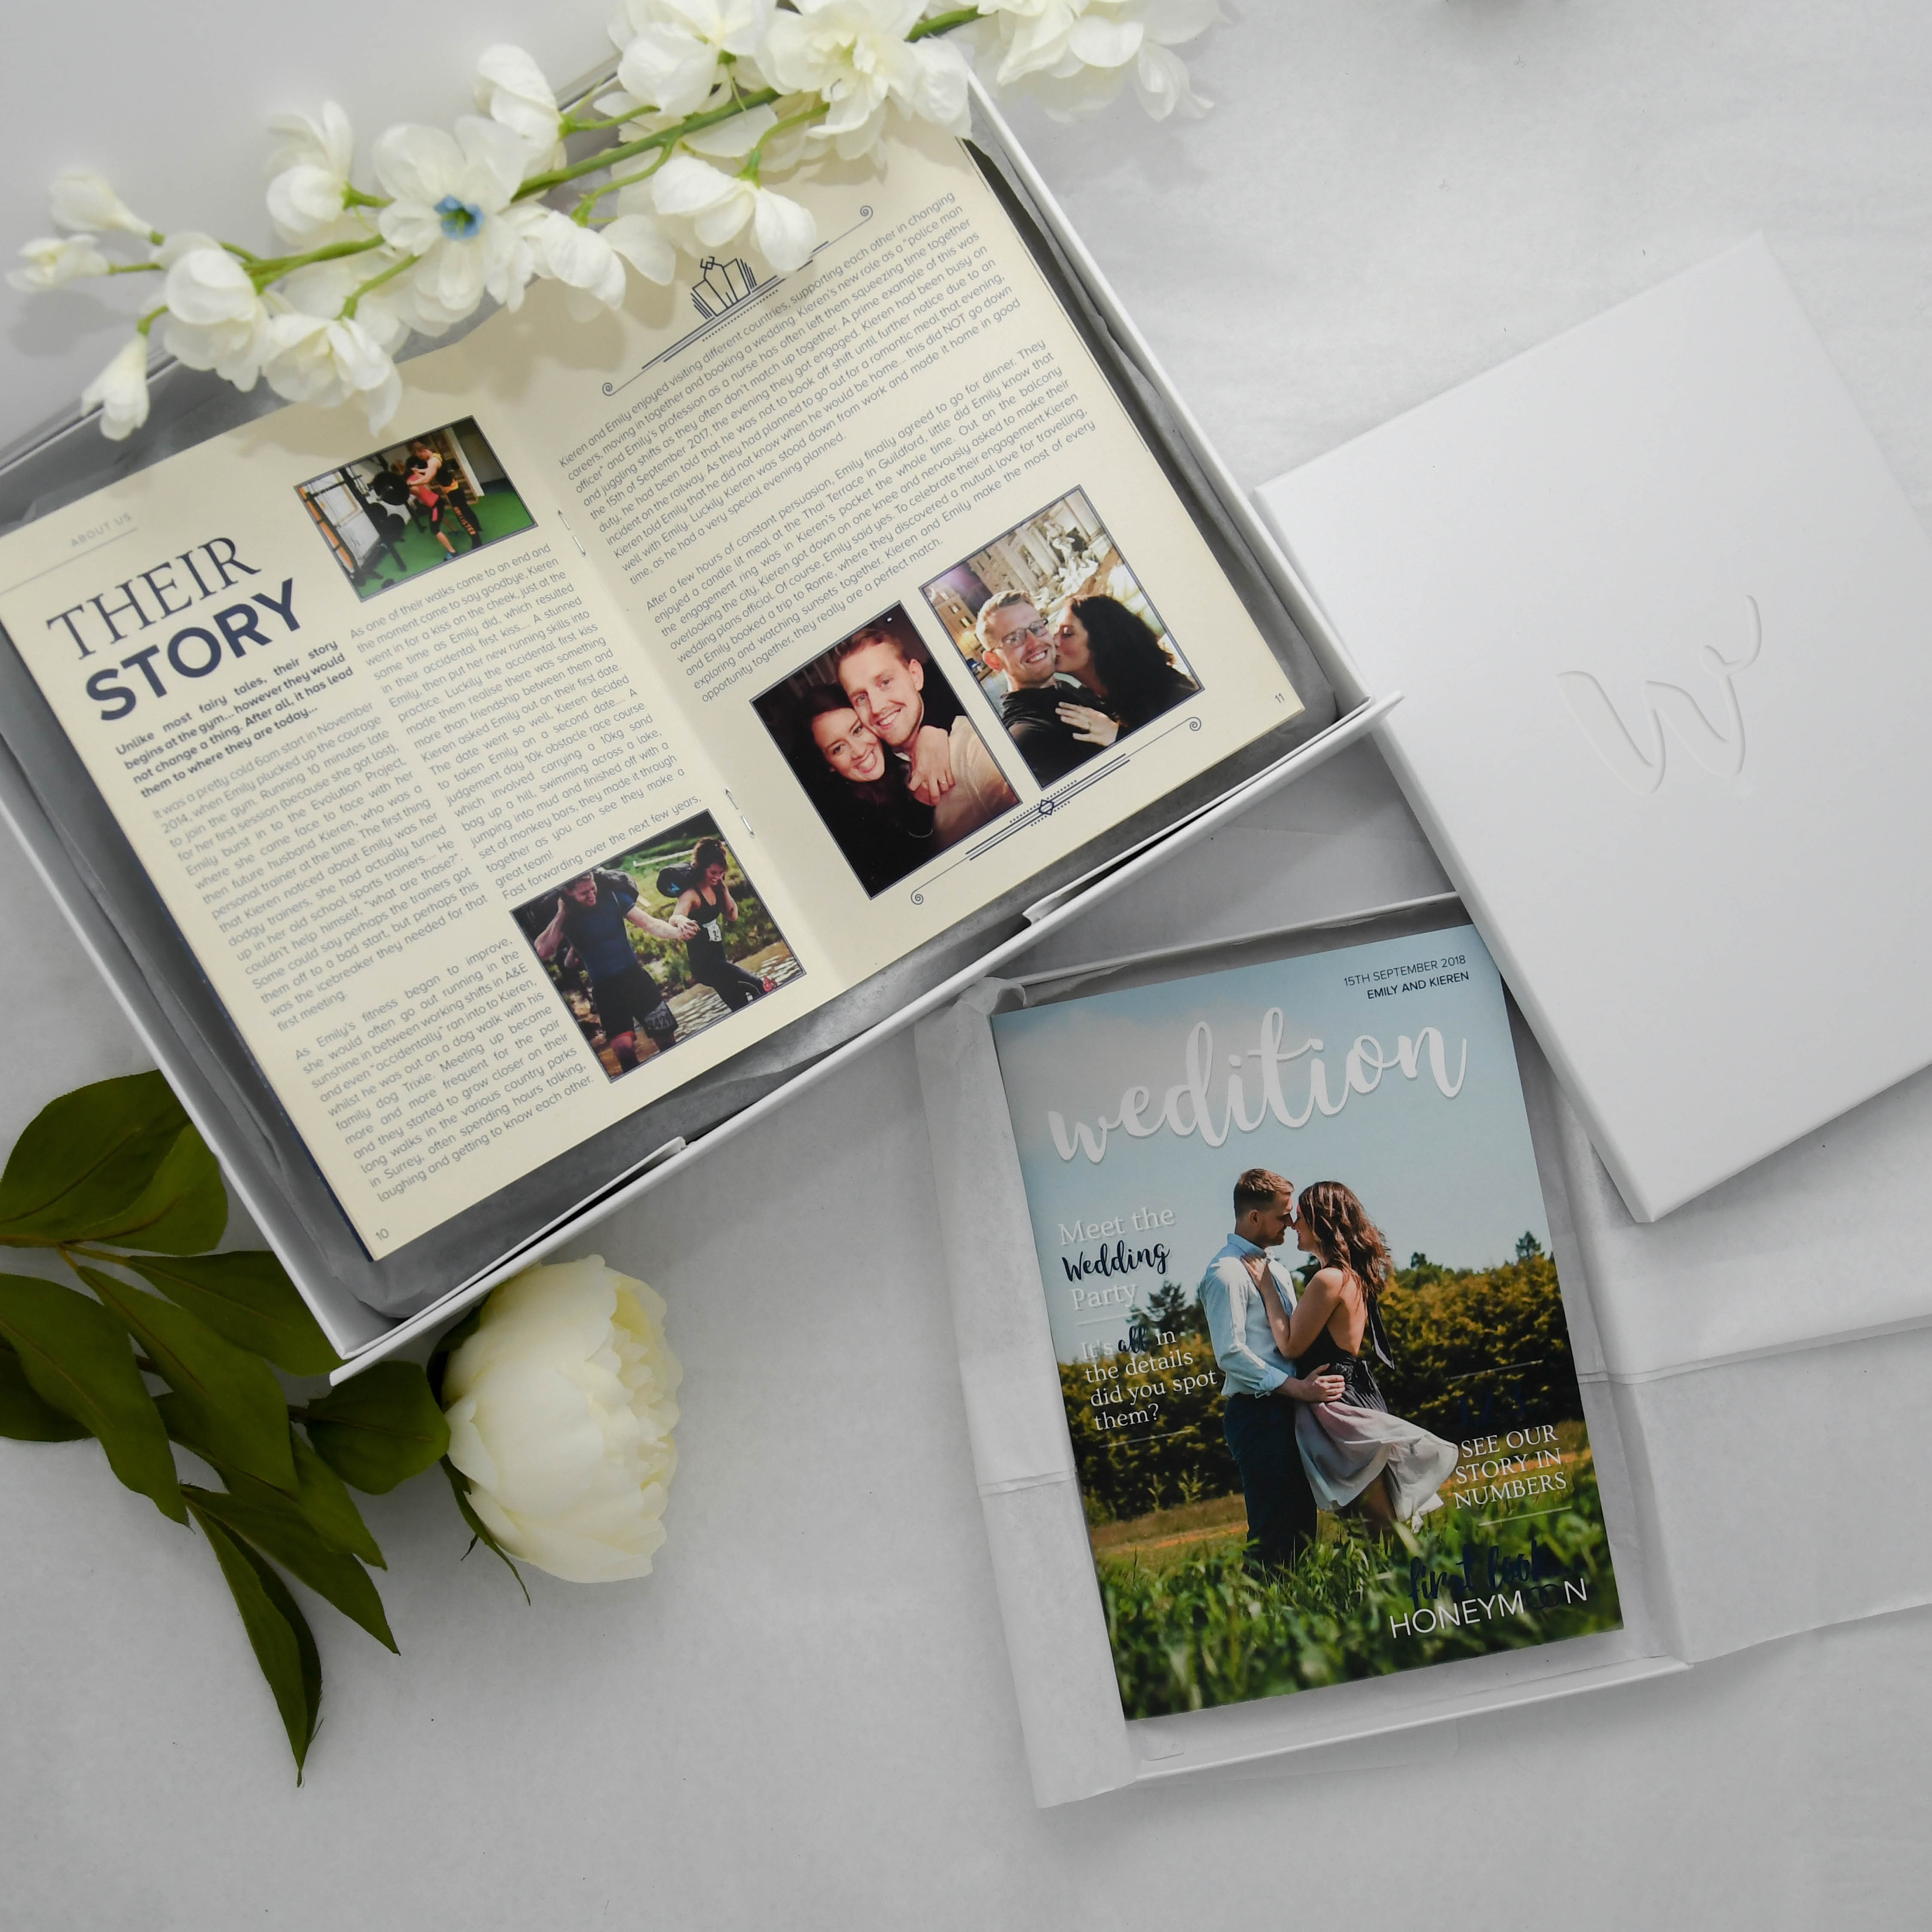 Micro wedding guest list, personalised magazine for micro wedding guests